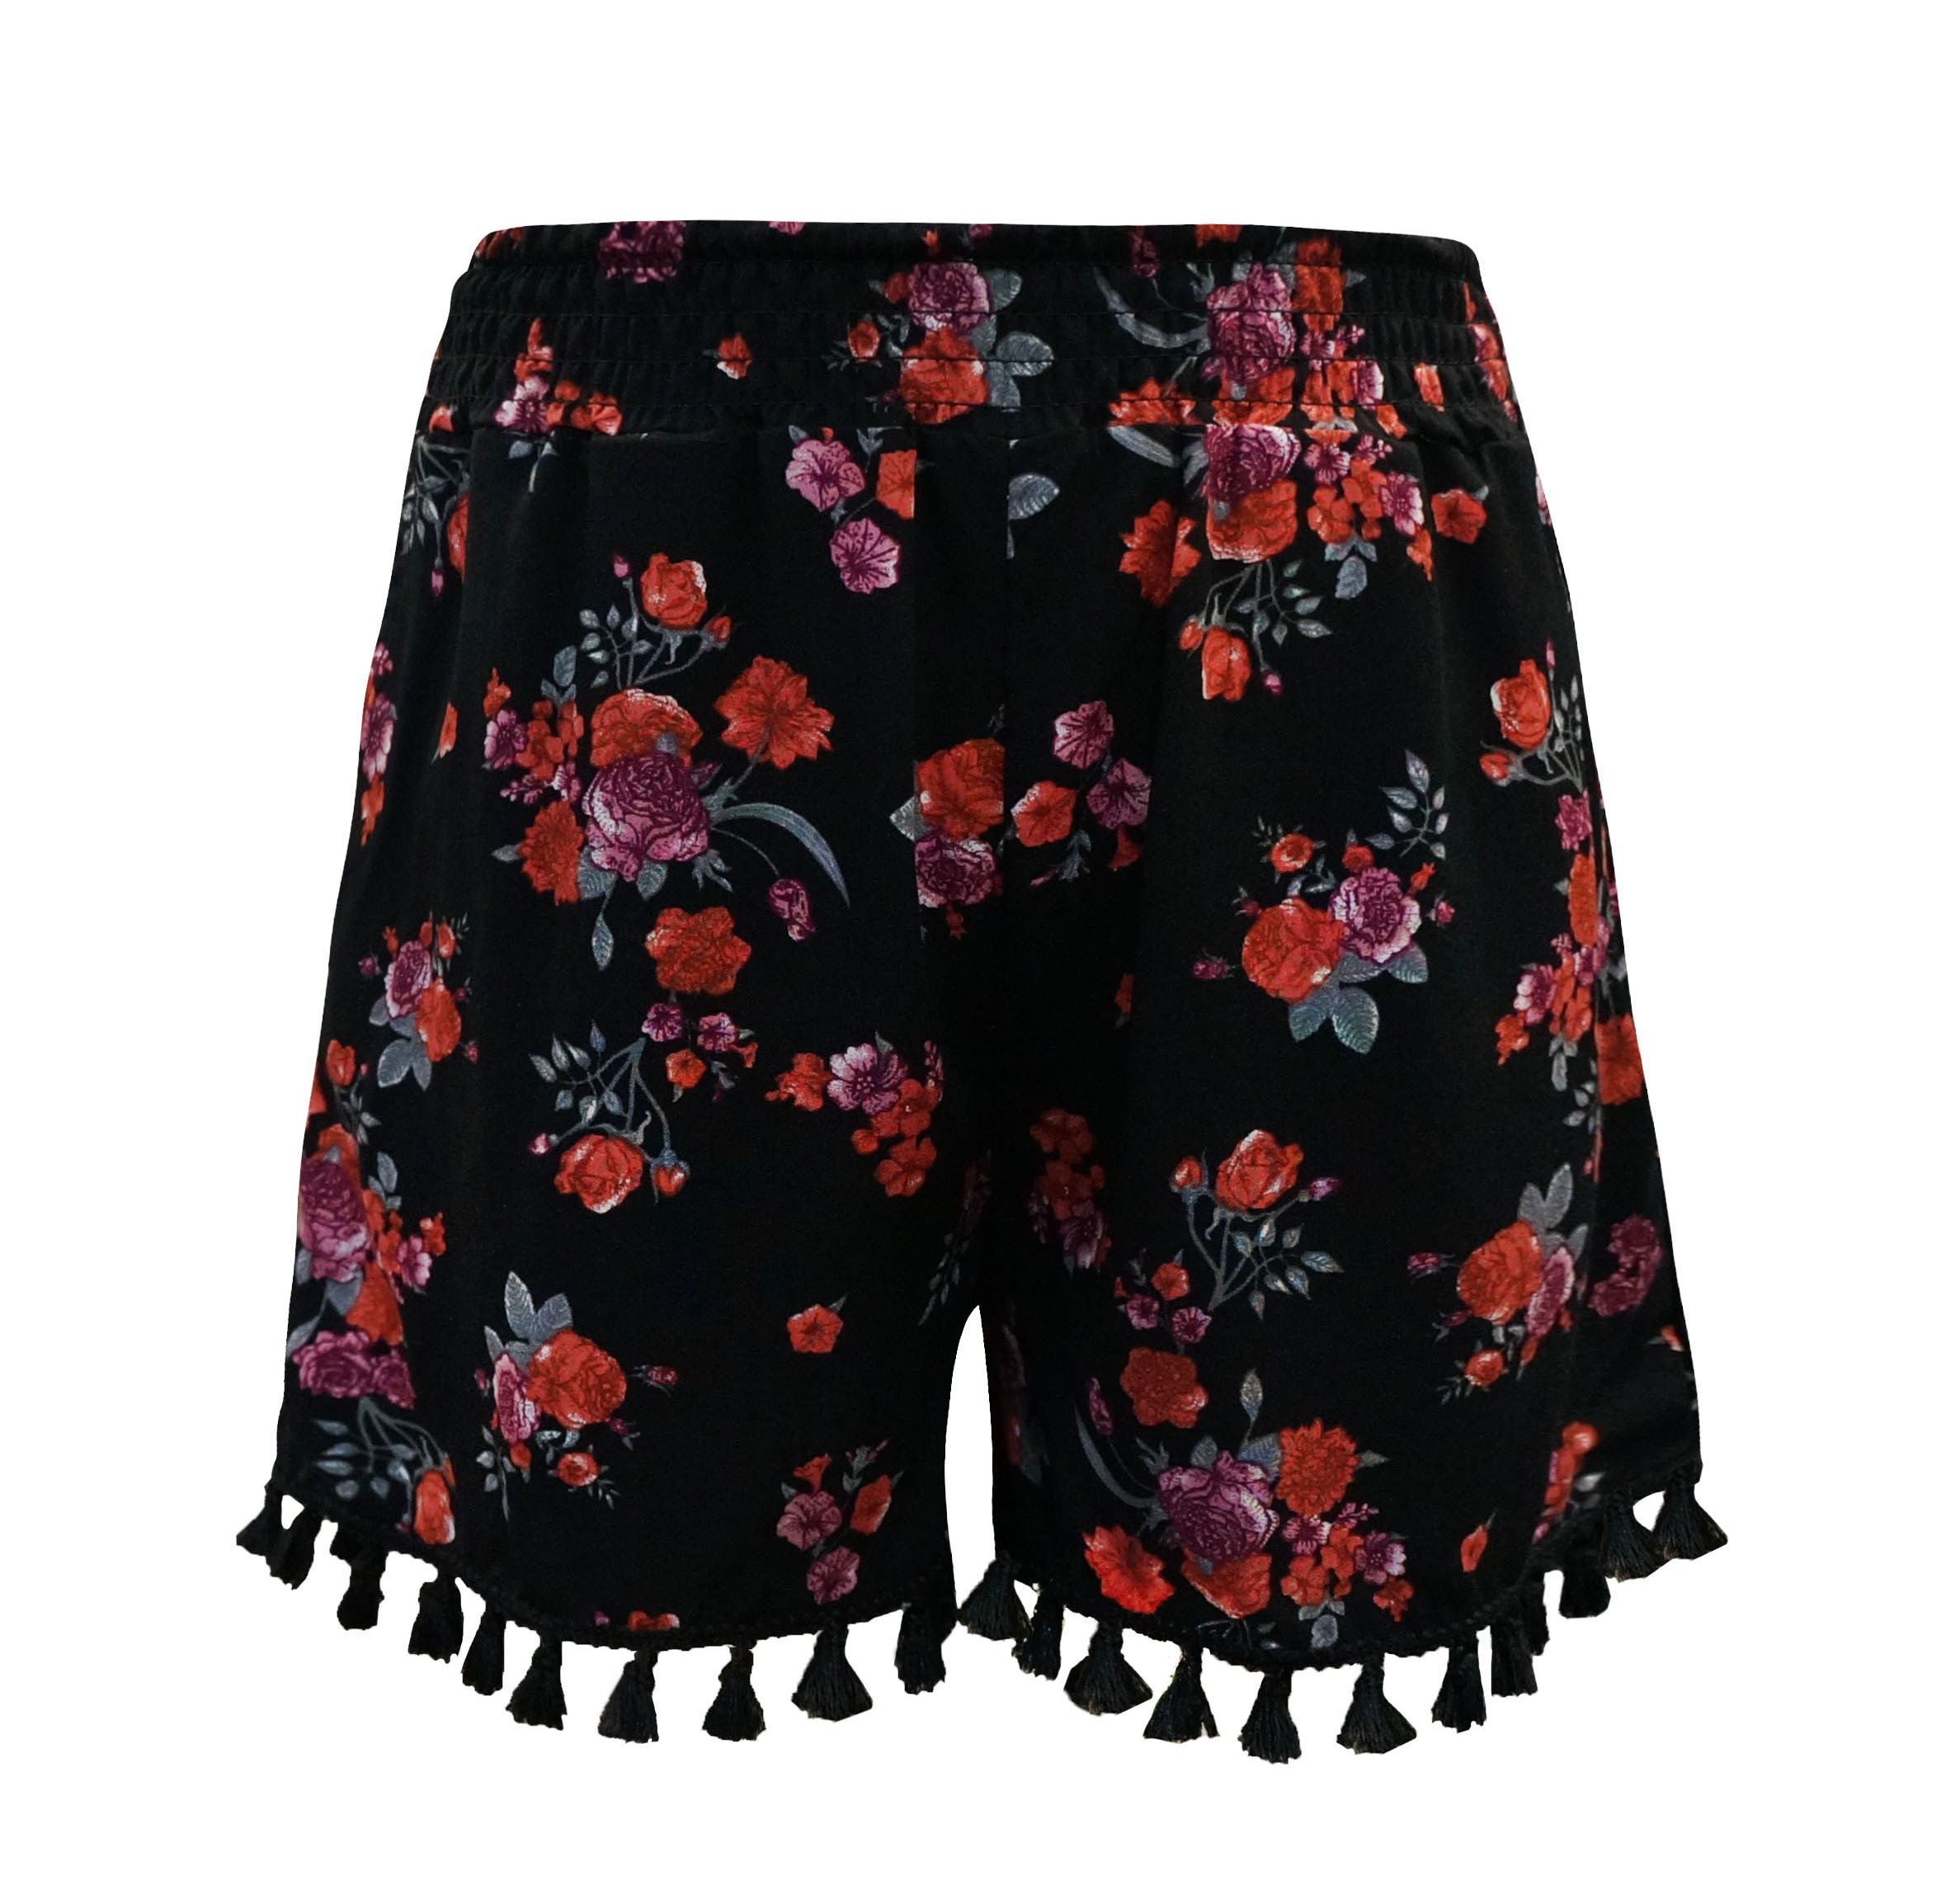 KIDS BLACK/GREY/COR FLORAL PRINT SMOCKING WAIST SHORTS W/ TASSEL TRIM(7/8,10/12)#XK8SH15-01